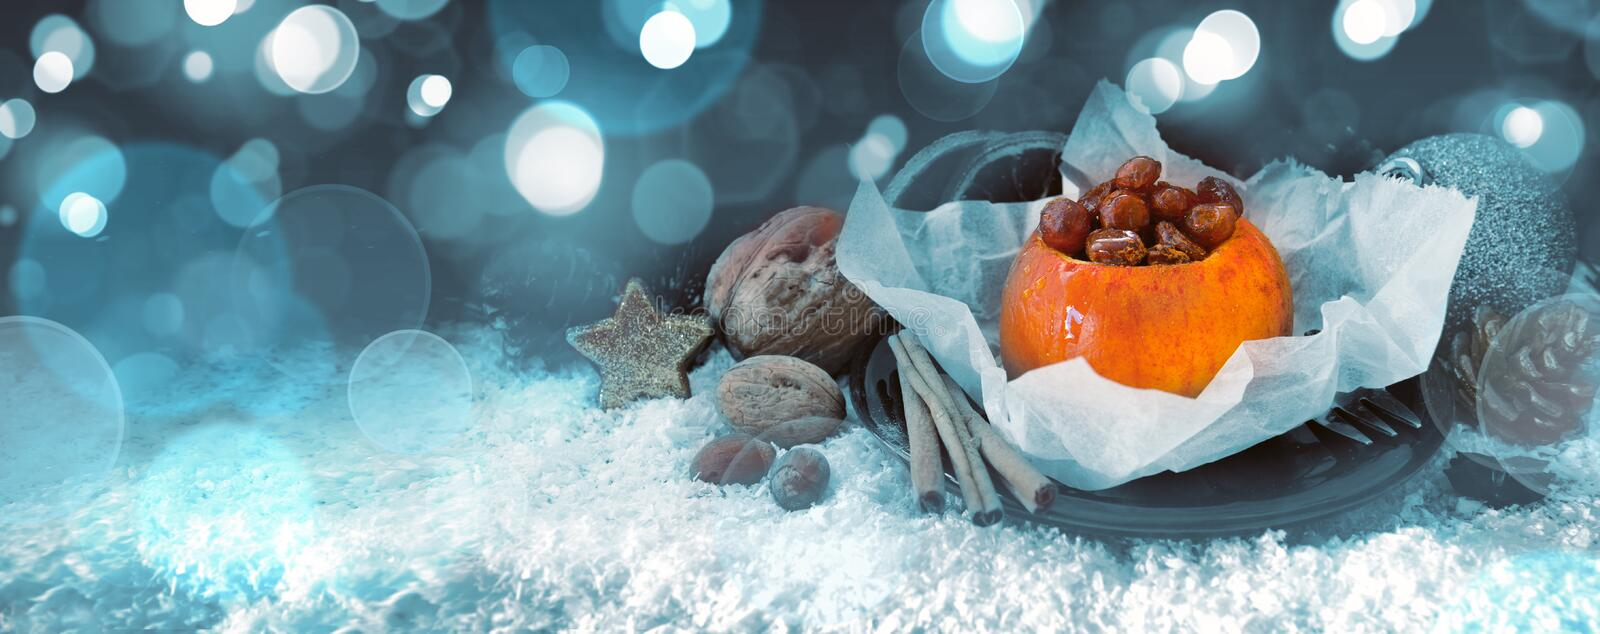 Baked apple with raisins and christmas decoration. stock photo